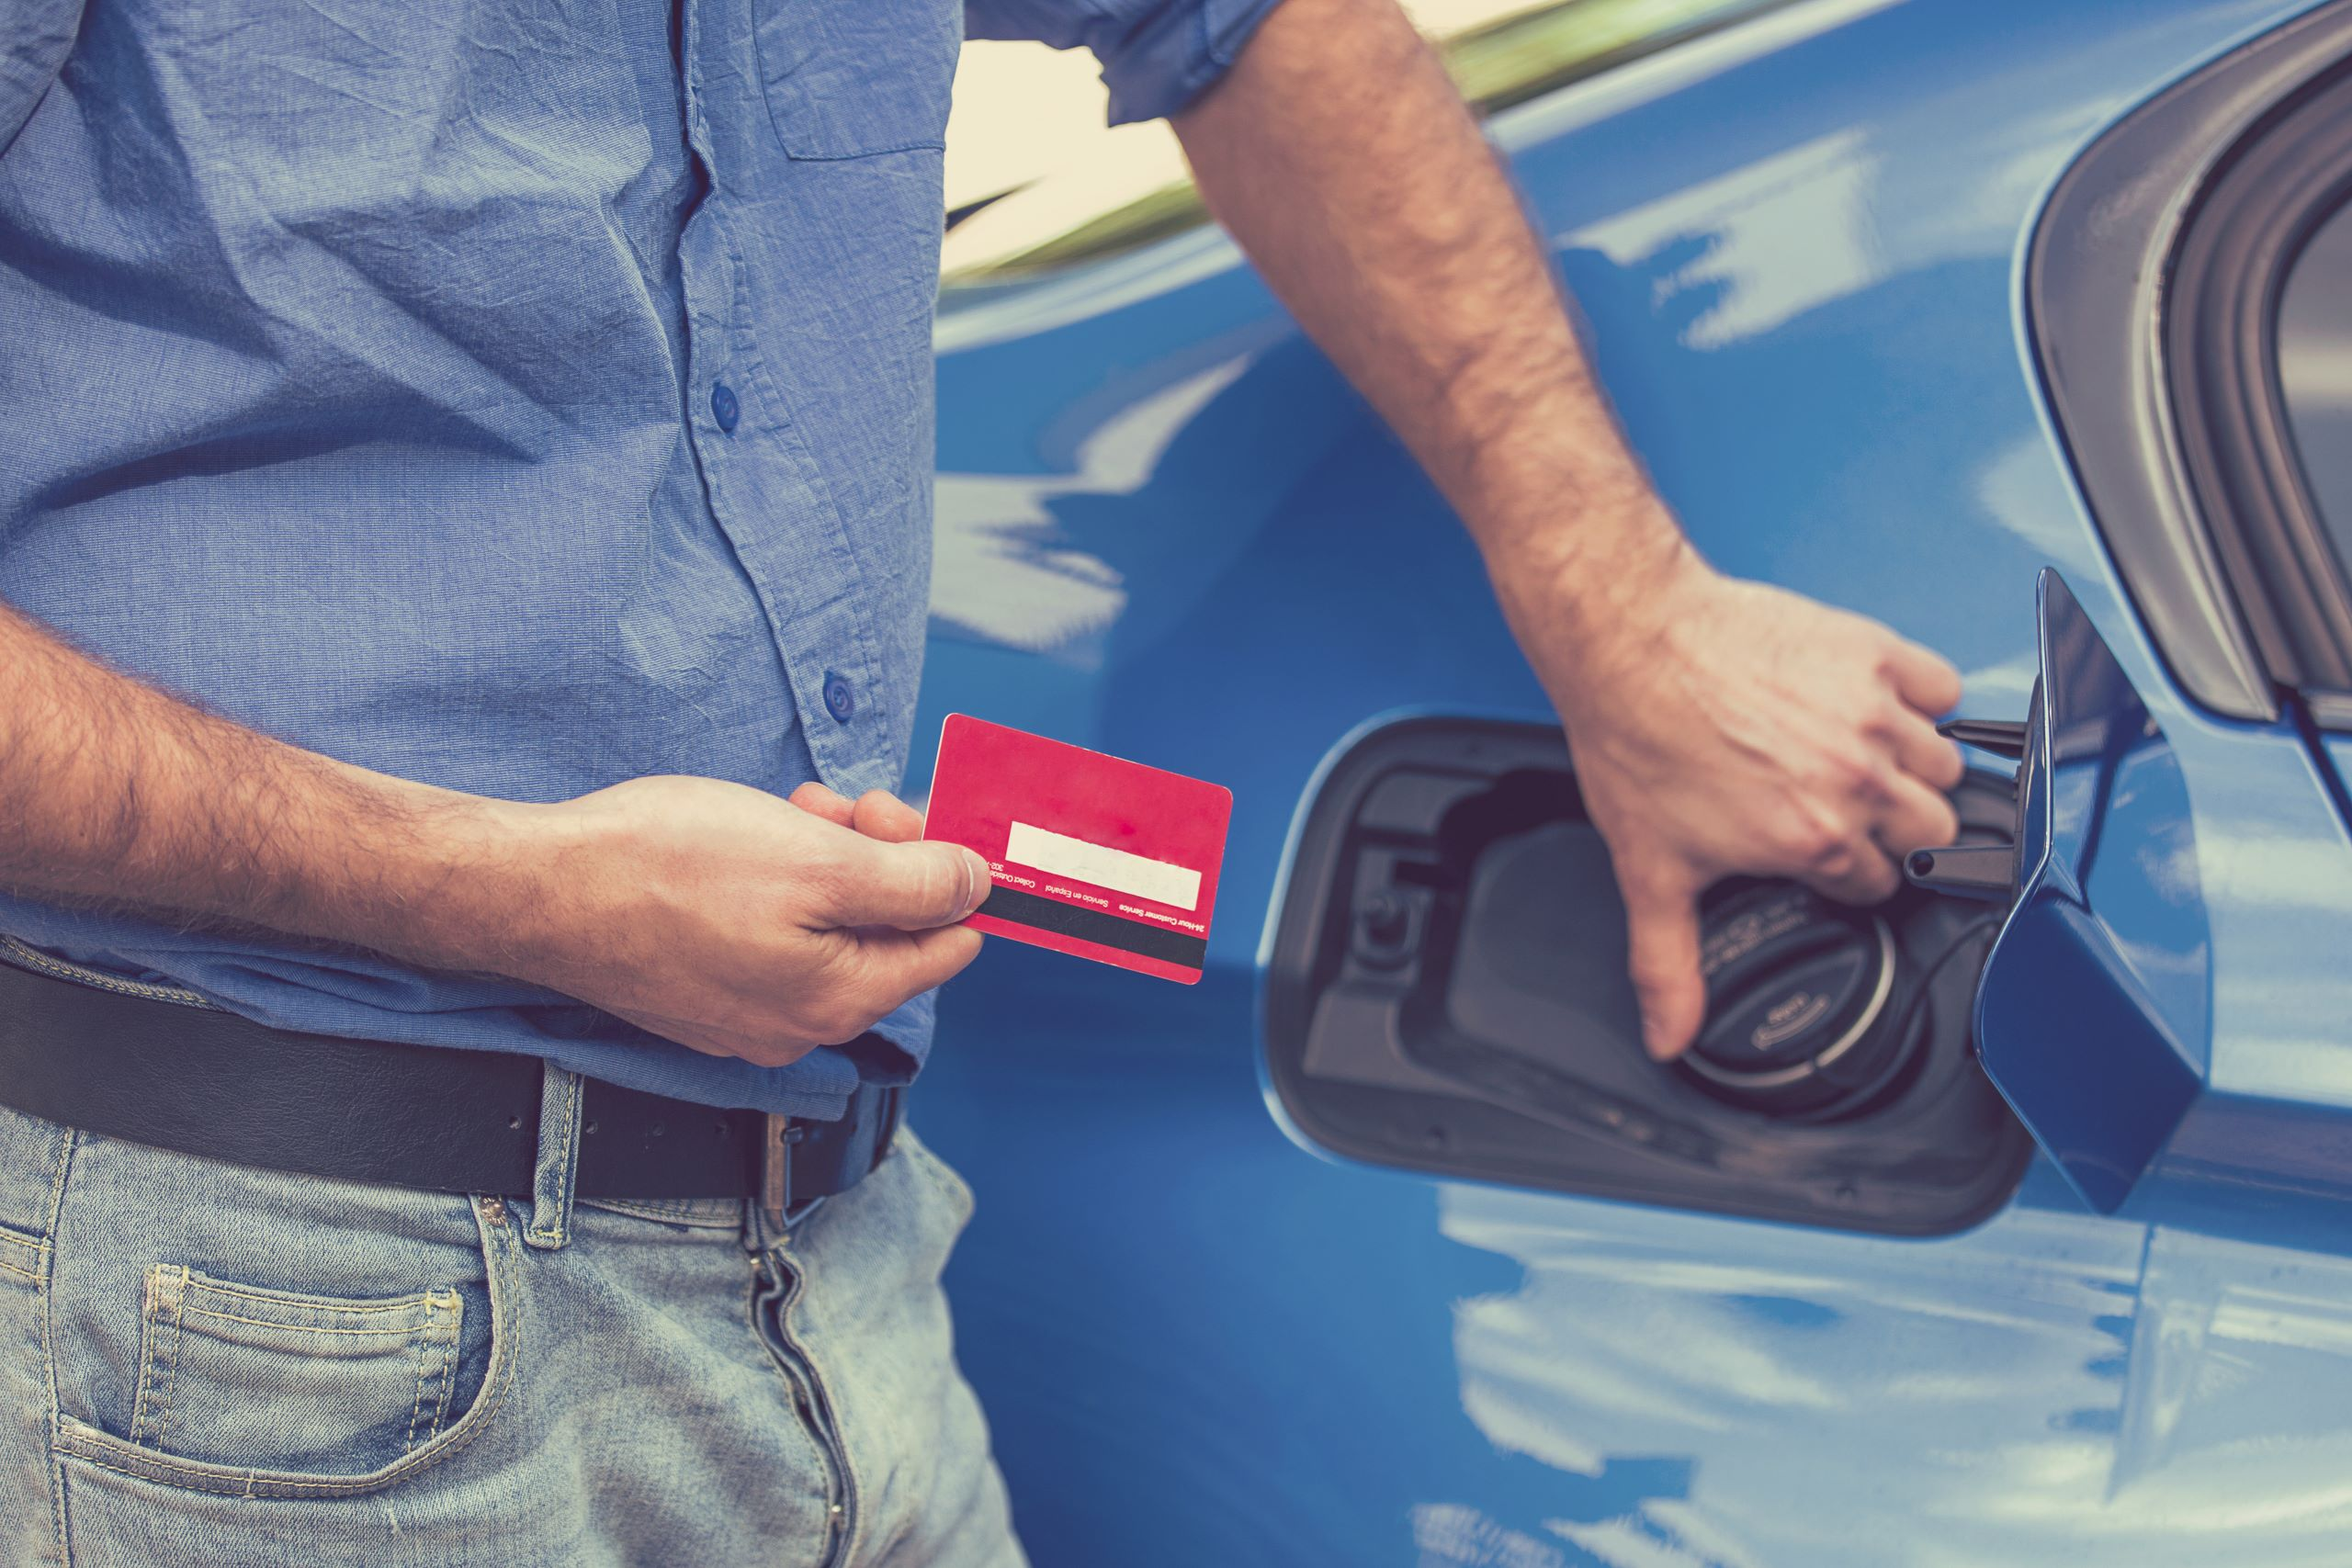 Man with fuel card opening fuel tank of his car